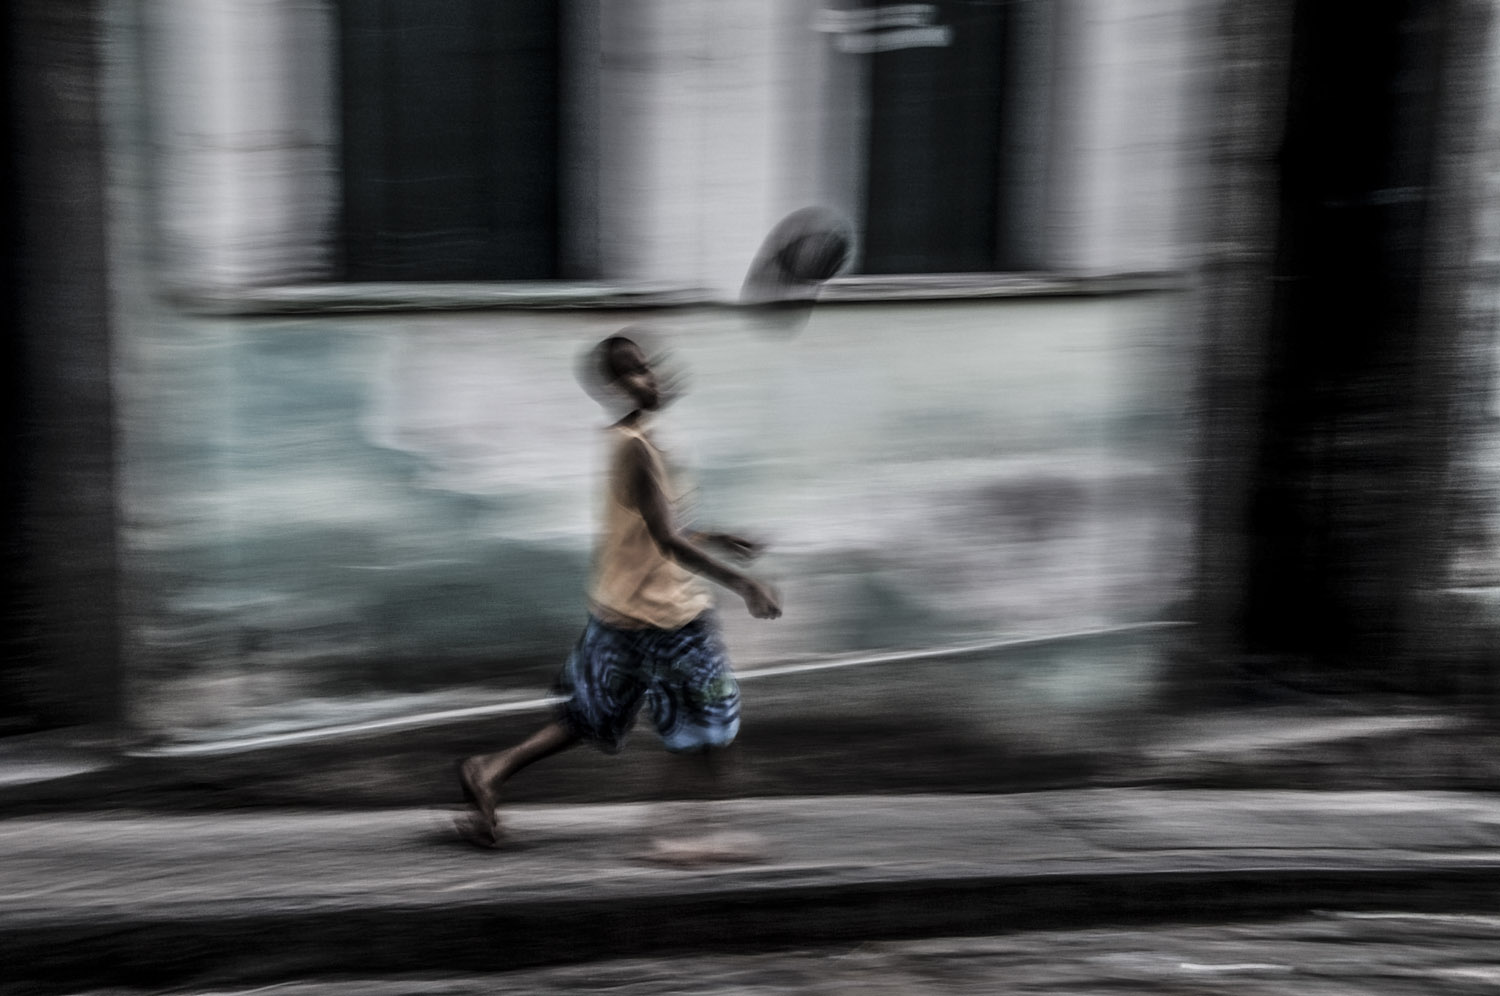 Football series #12, Salvador, Bahia, Brazil, 2010